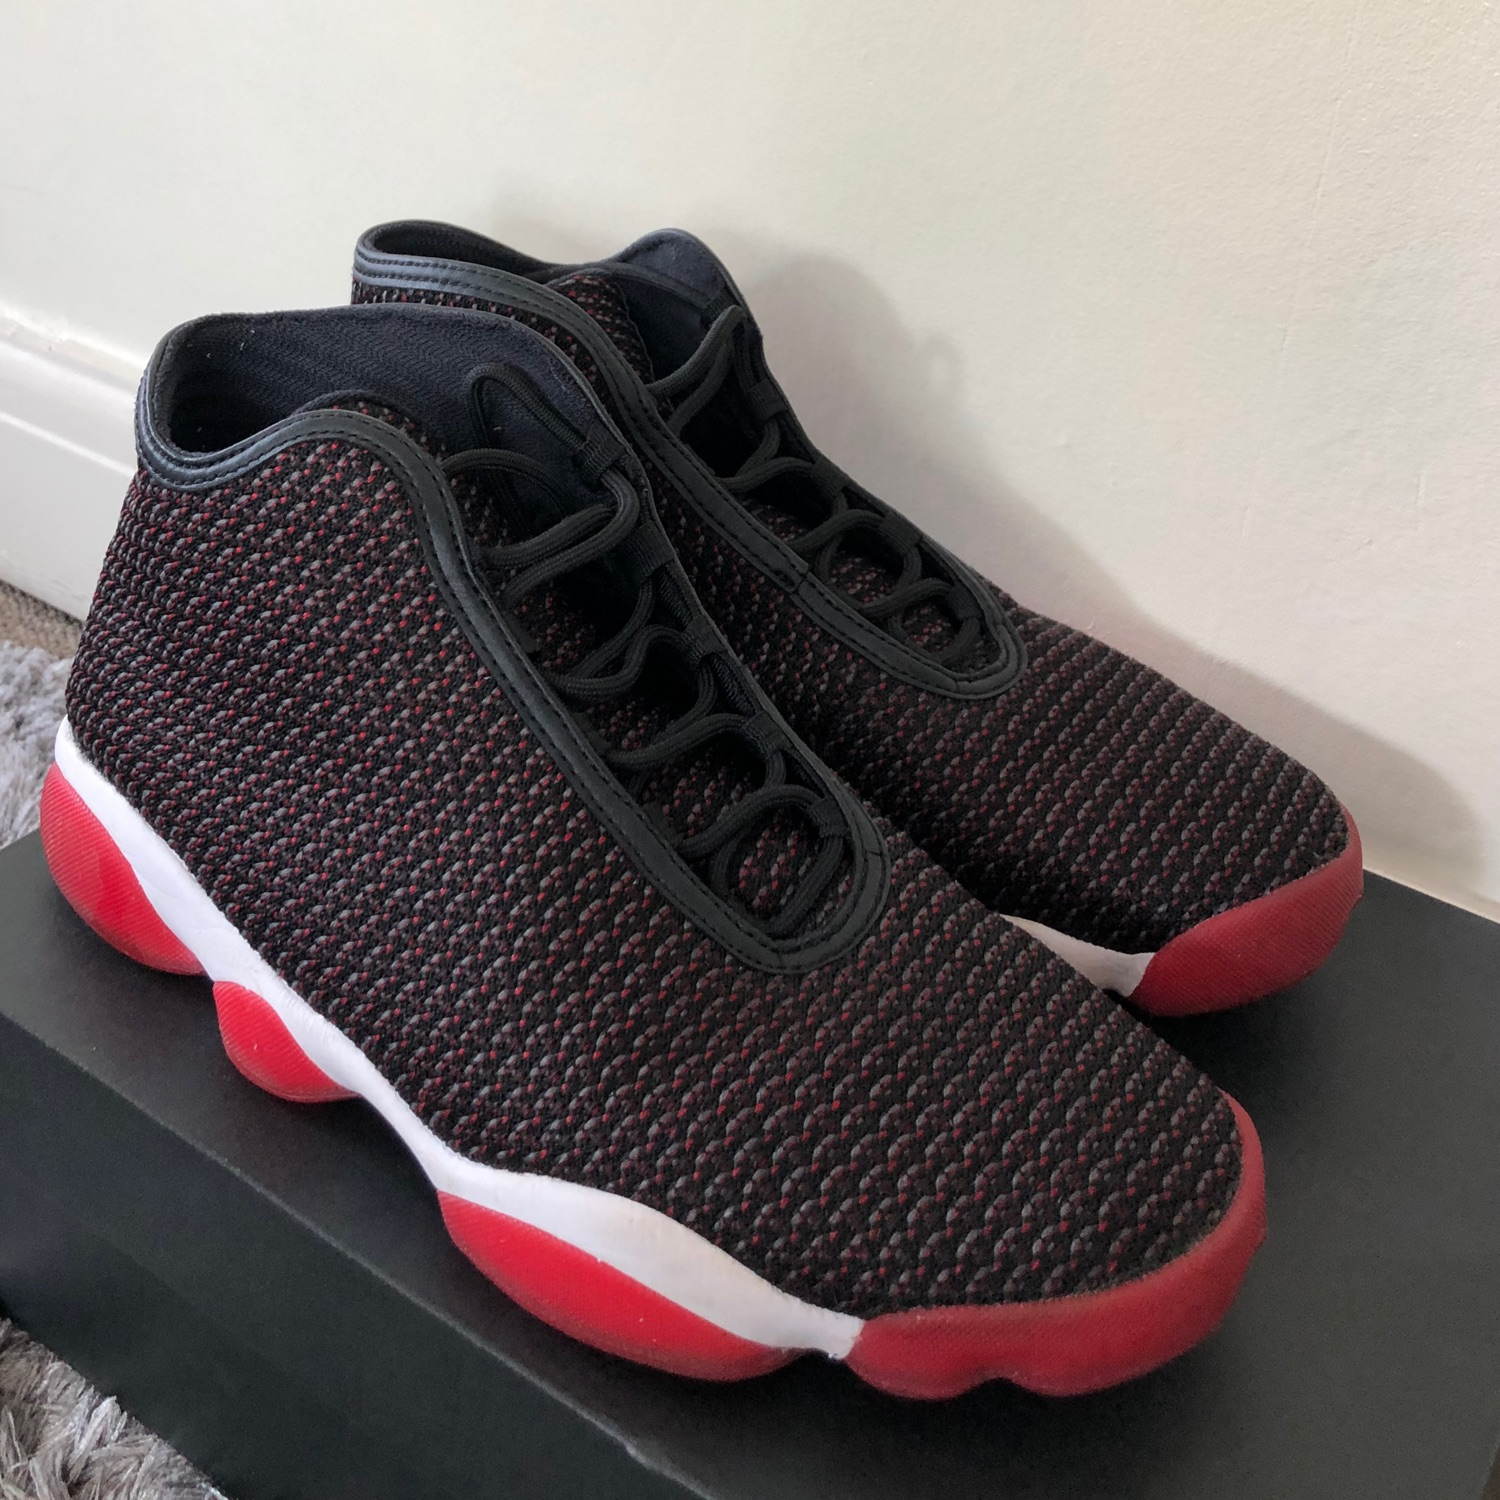 Jordan Horizon Jordan Horizon Red/Black